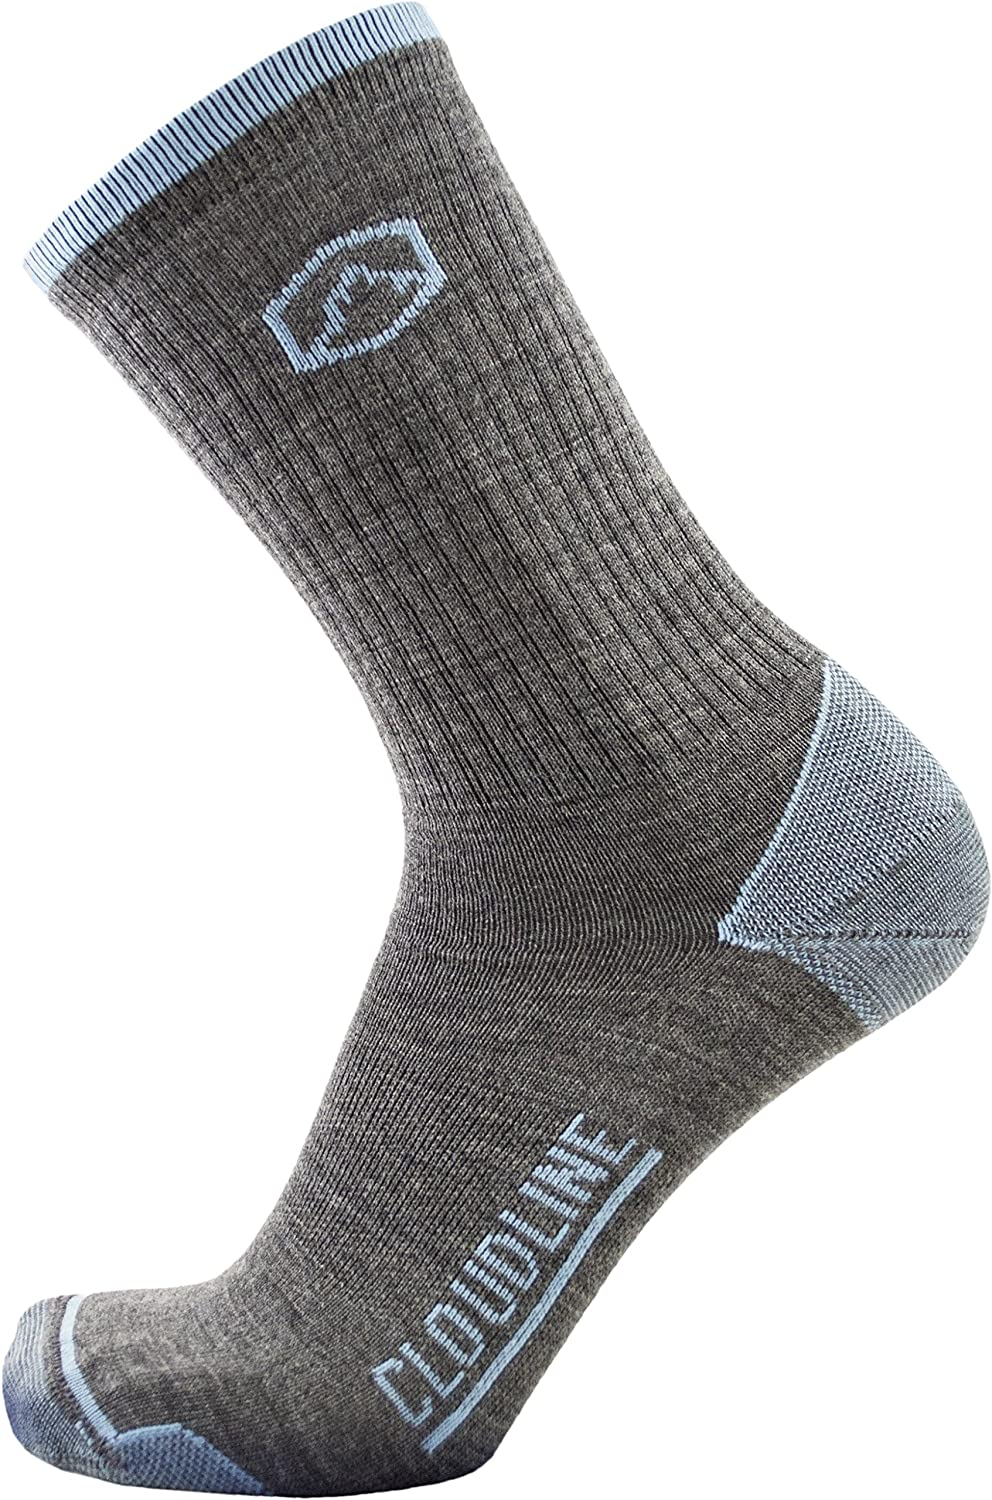 CloudLine Merino Wool Hiking & Athletic Crew Socks - Ultra Light - Made in USA